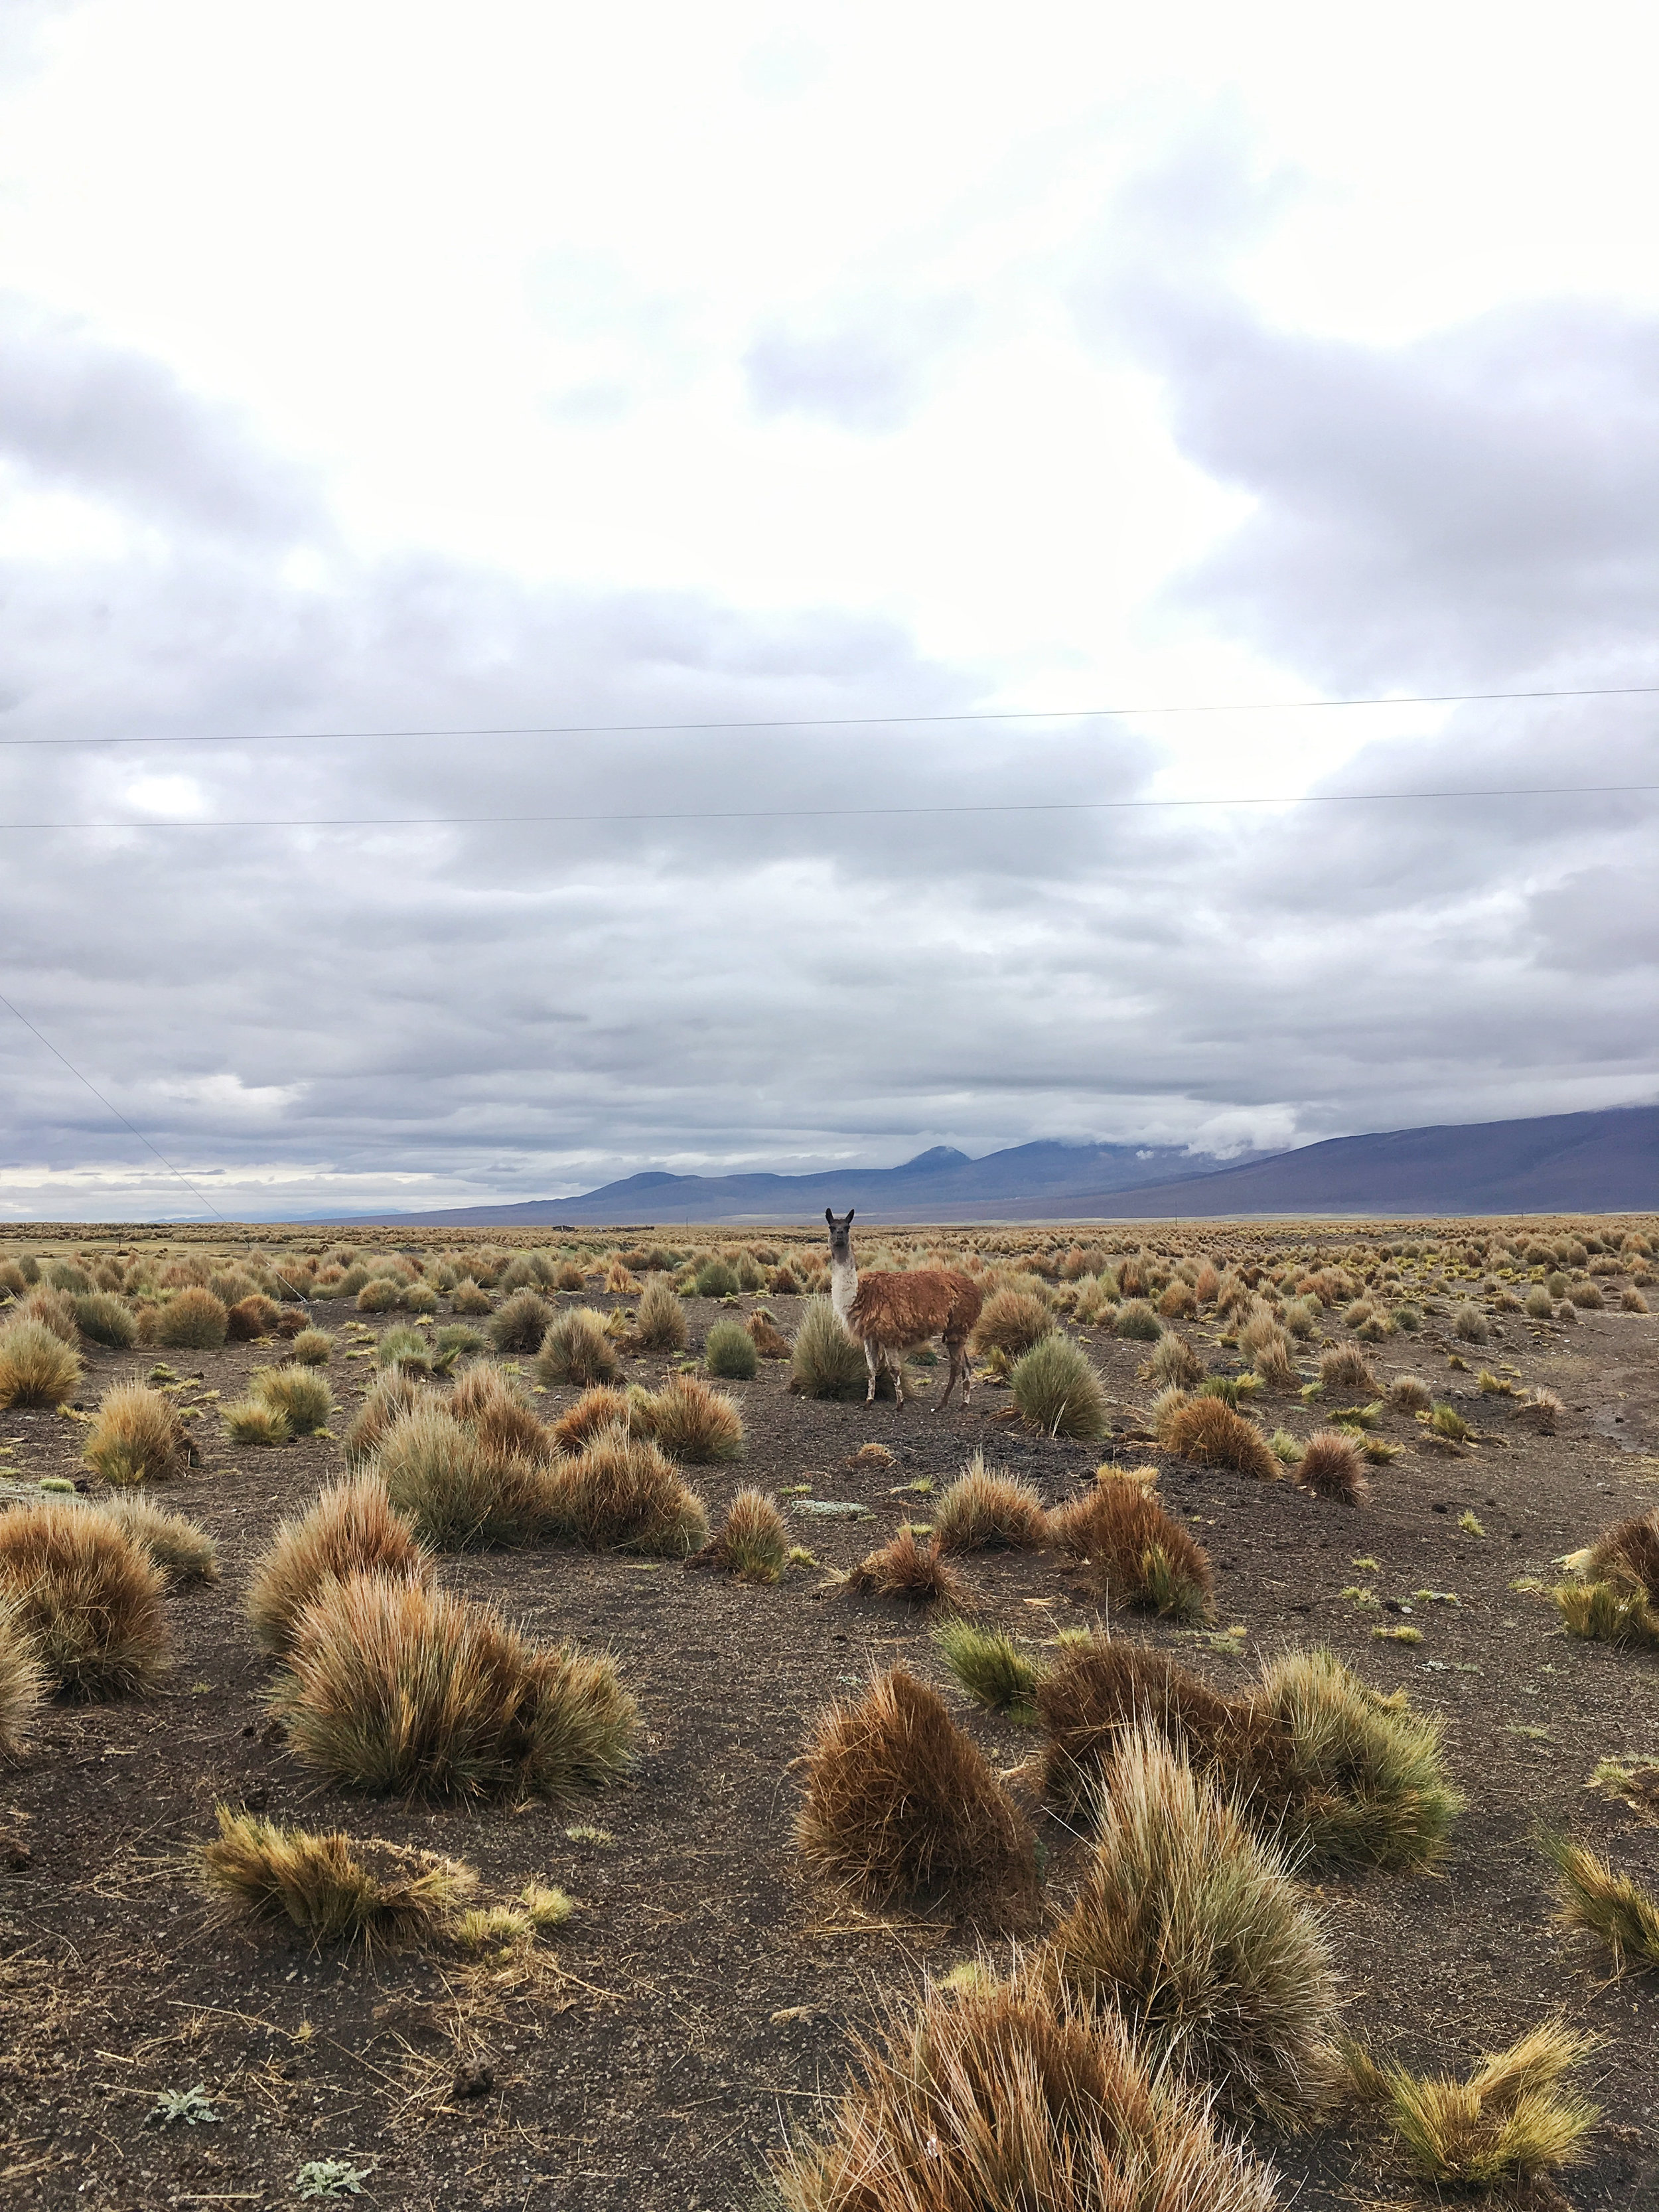 Nothing but open space...and Llamas